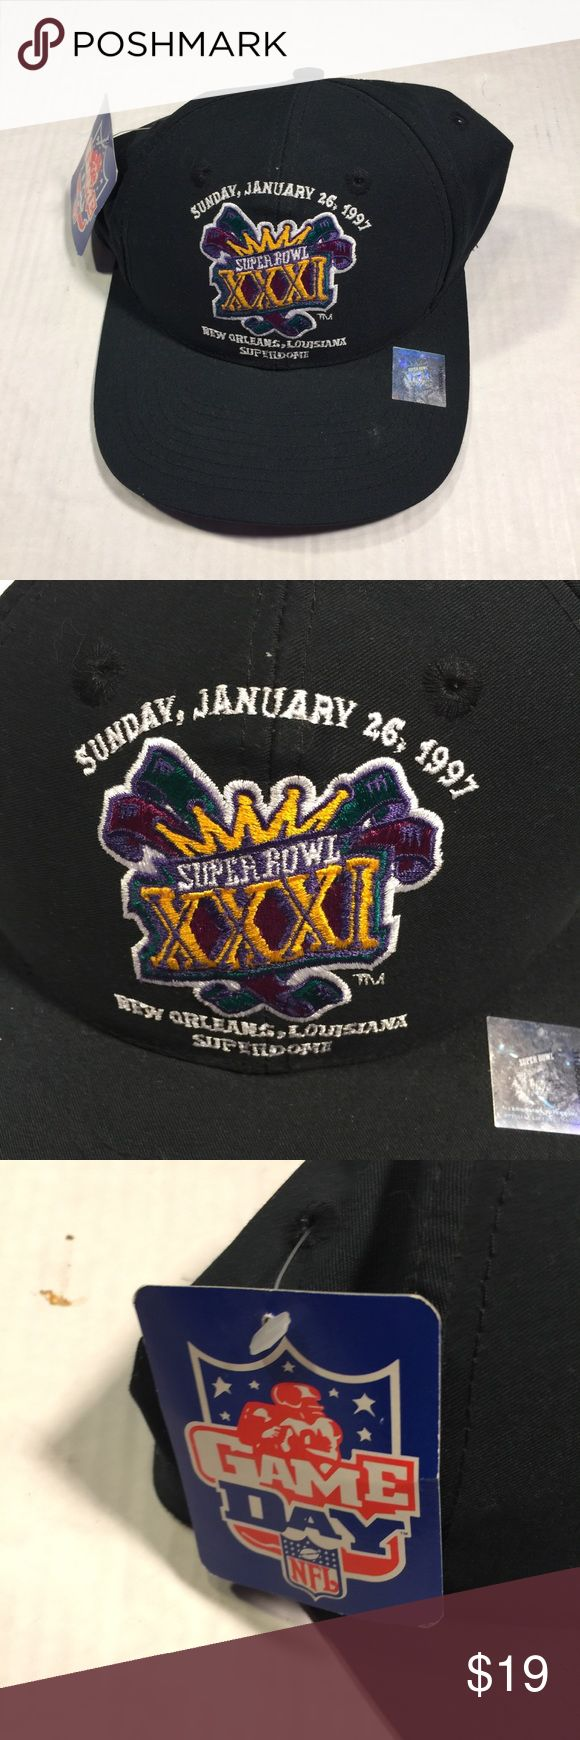 Vintage super bowl XXXI snap back logo 7! Brand new with tags logo 7 super bowl snap  Fast shipping  Best prices on poshmark  Check out my other items everything is listed $19 logo 7 Accessories Hats